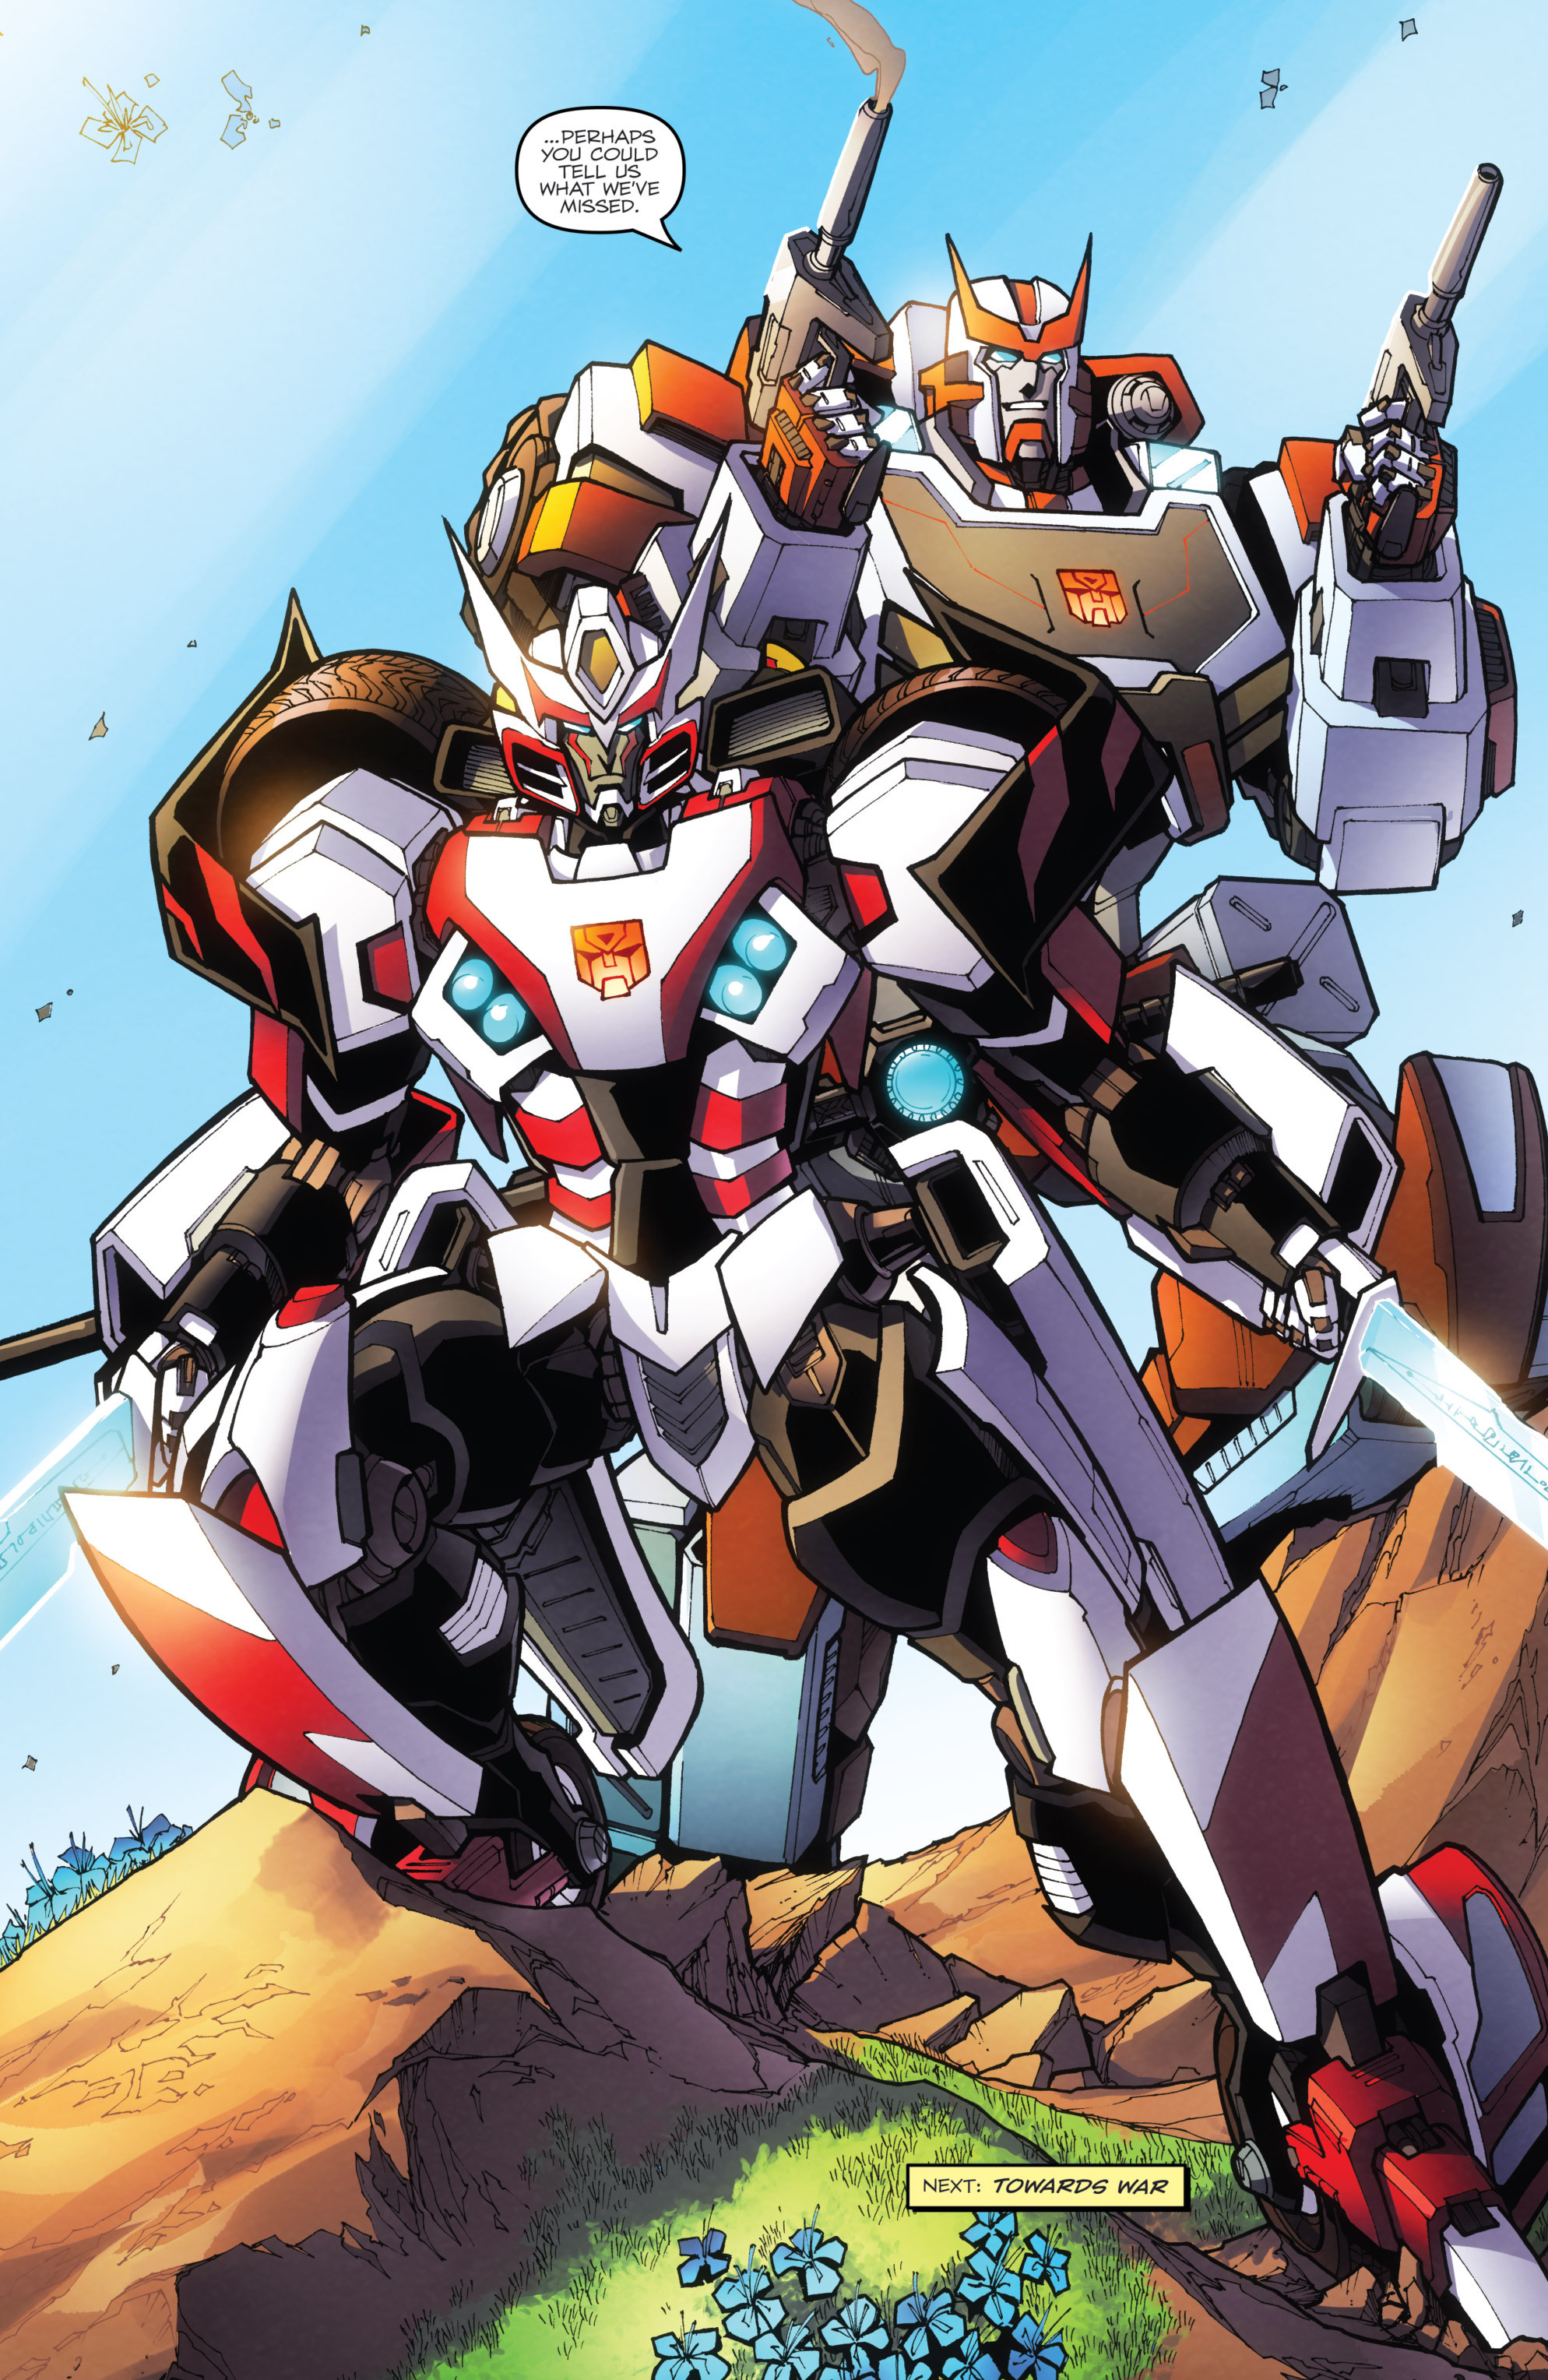 ratchet and drift return from empire of stone with new looks